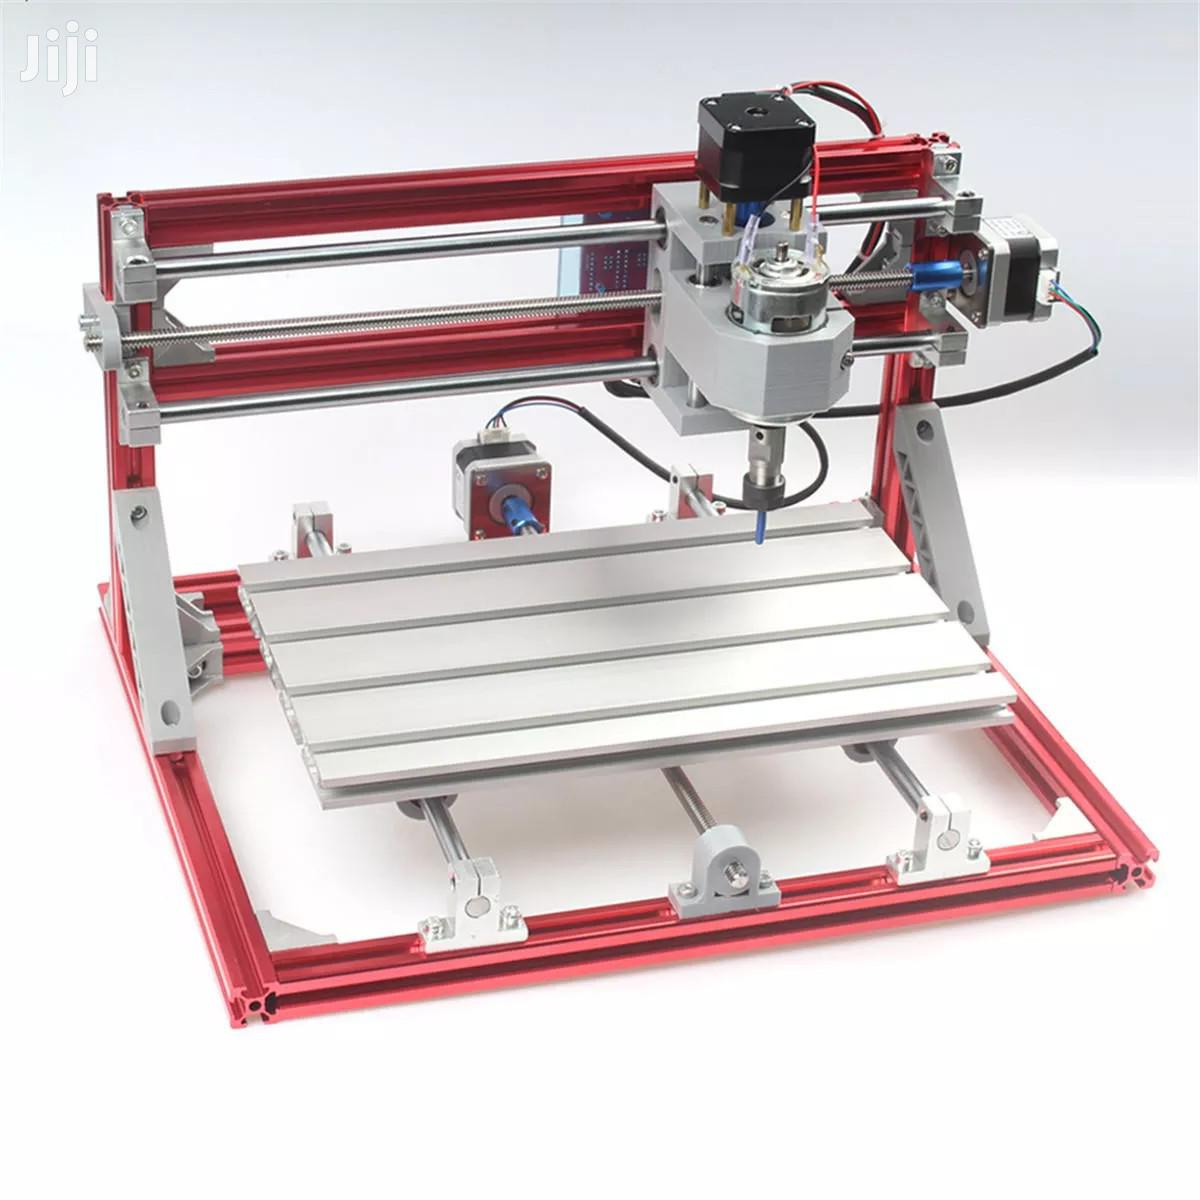 3018 3 Axis Red CNC Wood Engraving Carving PCB Milling Machine Router